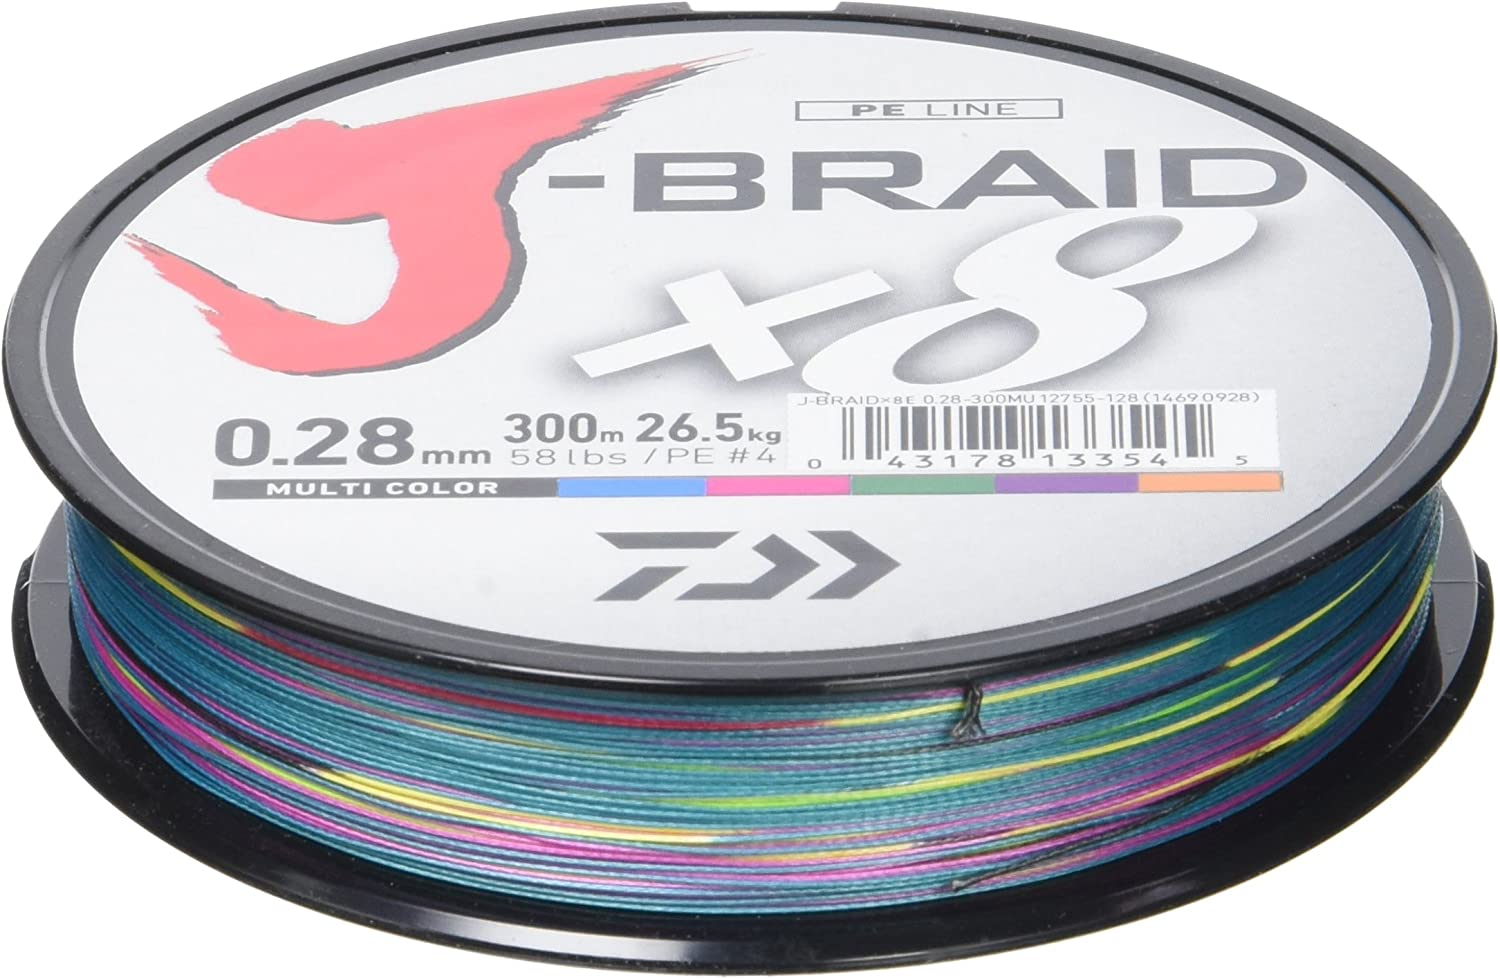 Daiwa J-trenza 8 trenza 300 M Multi Colour - hilo de pesca: Amazon ...